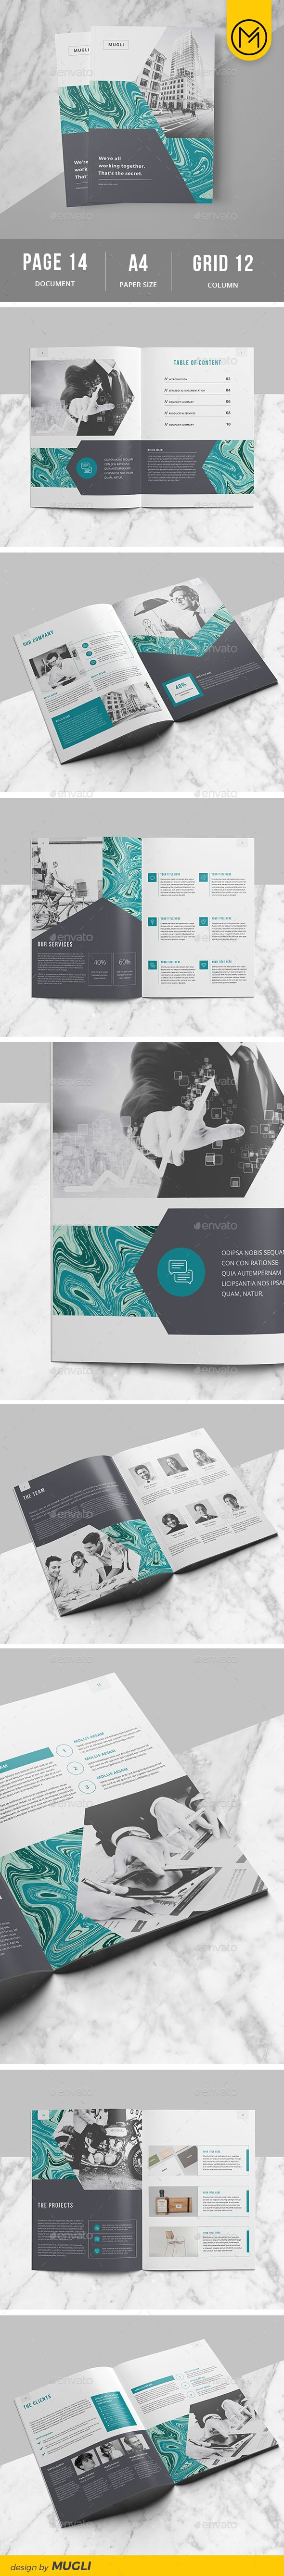 Brochure — Vector EPS #professional #annual report • Download ➝ https://graphicriver.net/item/brochure/19486784?ref=pxcr